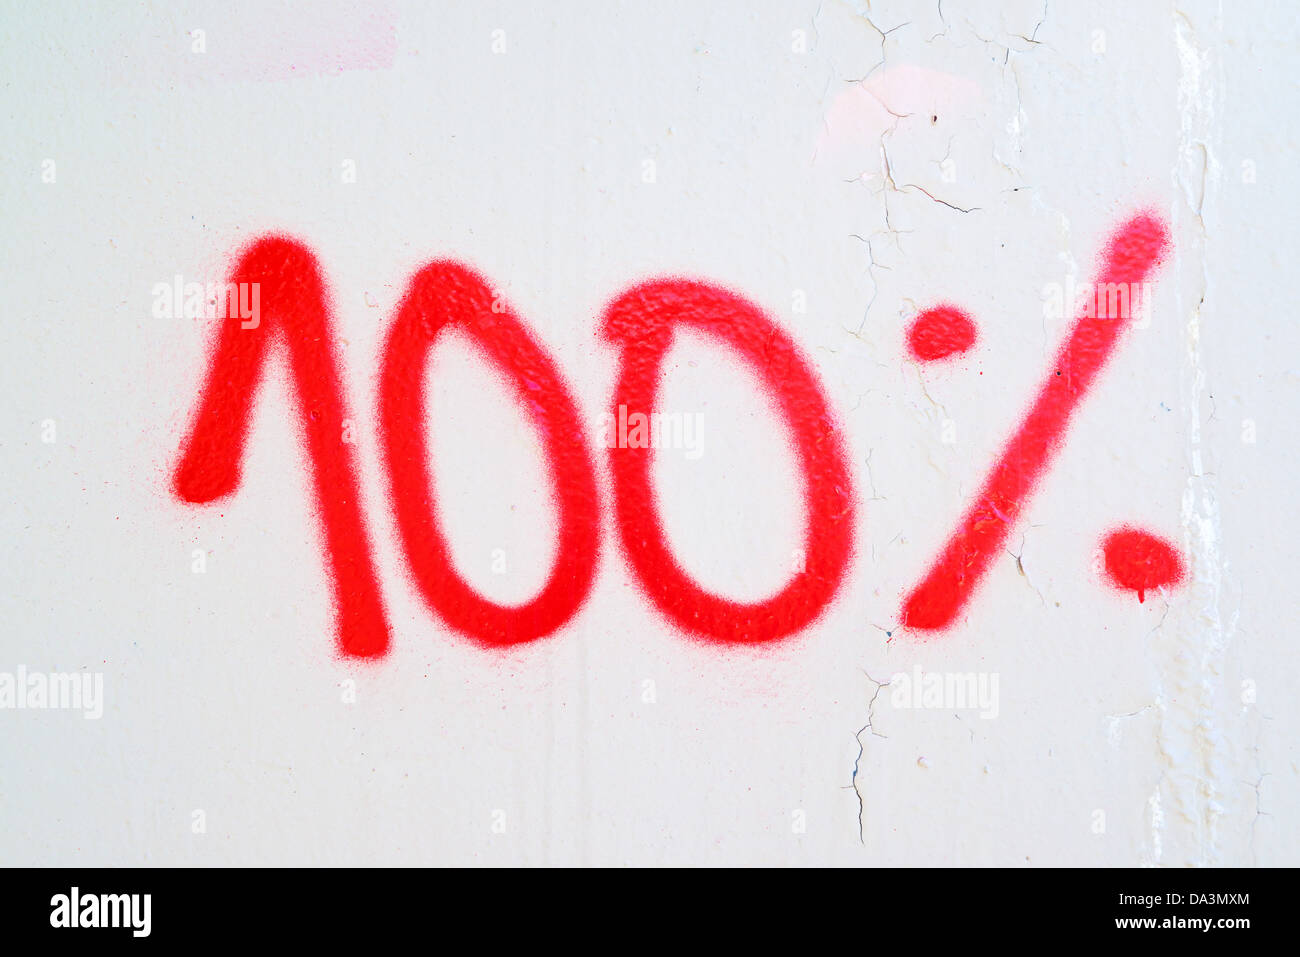 Hundred percent, red graffiti on the white wall. Stock Photo